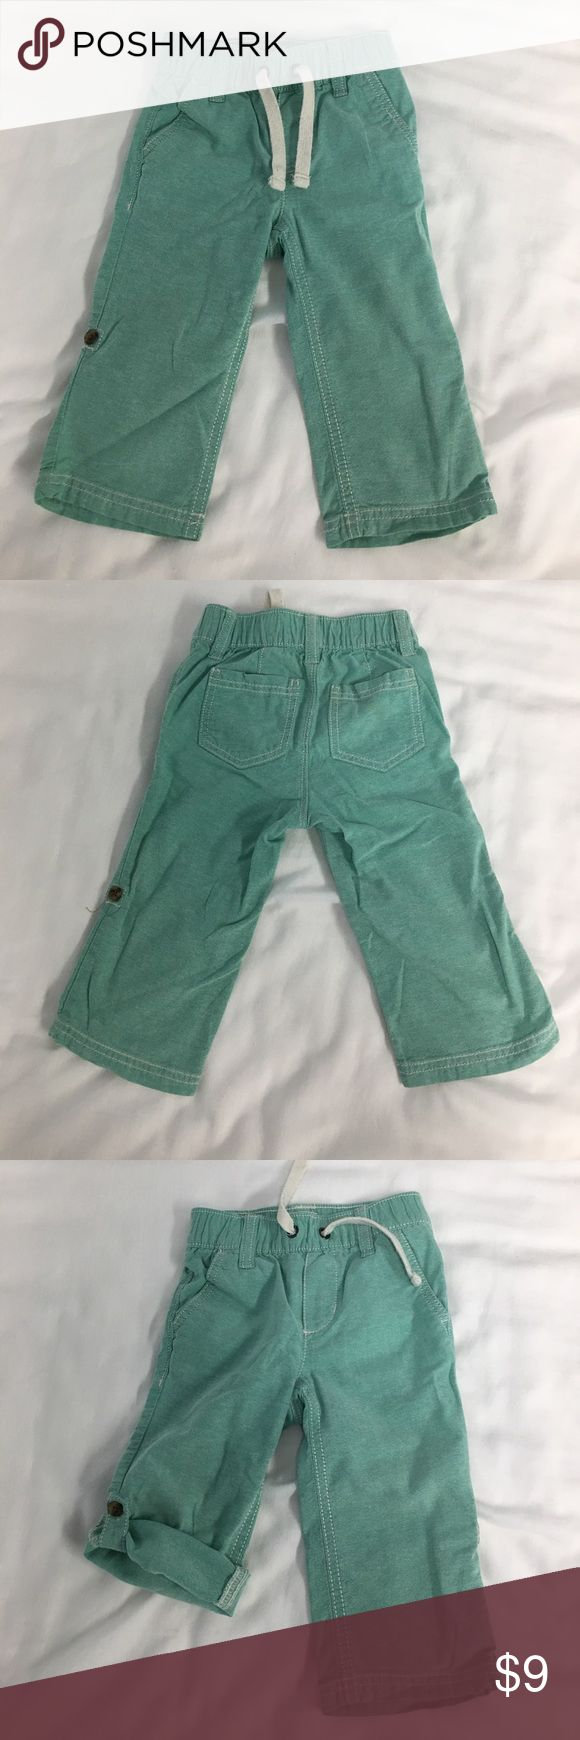 Old Navy Boys Mint Green Pants 12-18 Months Old Navy Boys Mint Green Pants 12-18 Months, can be worn as a full pant or rolled up to knicker/short height. Elastic Waist. In excellent condition! Old Navy Bottoms Casual